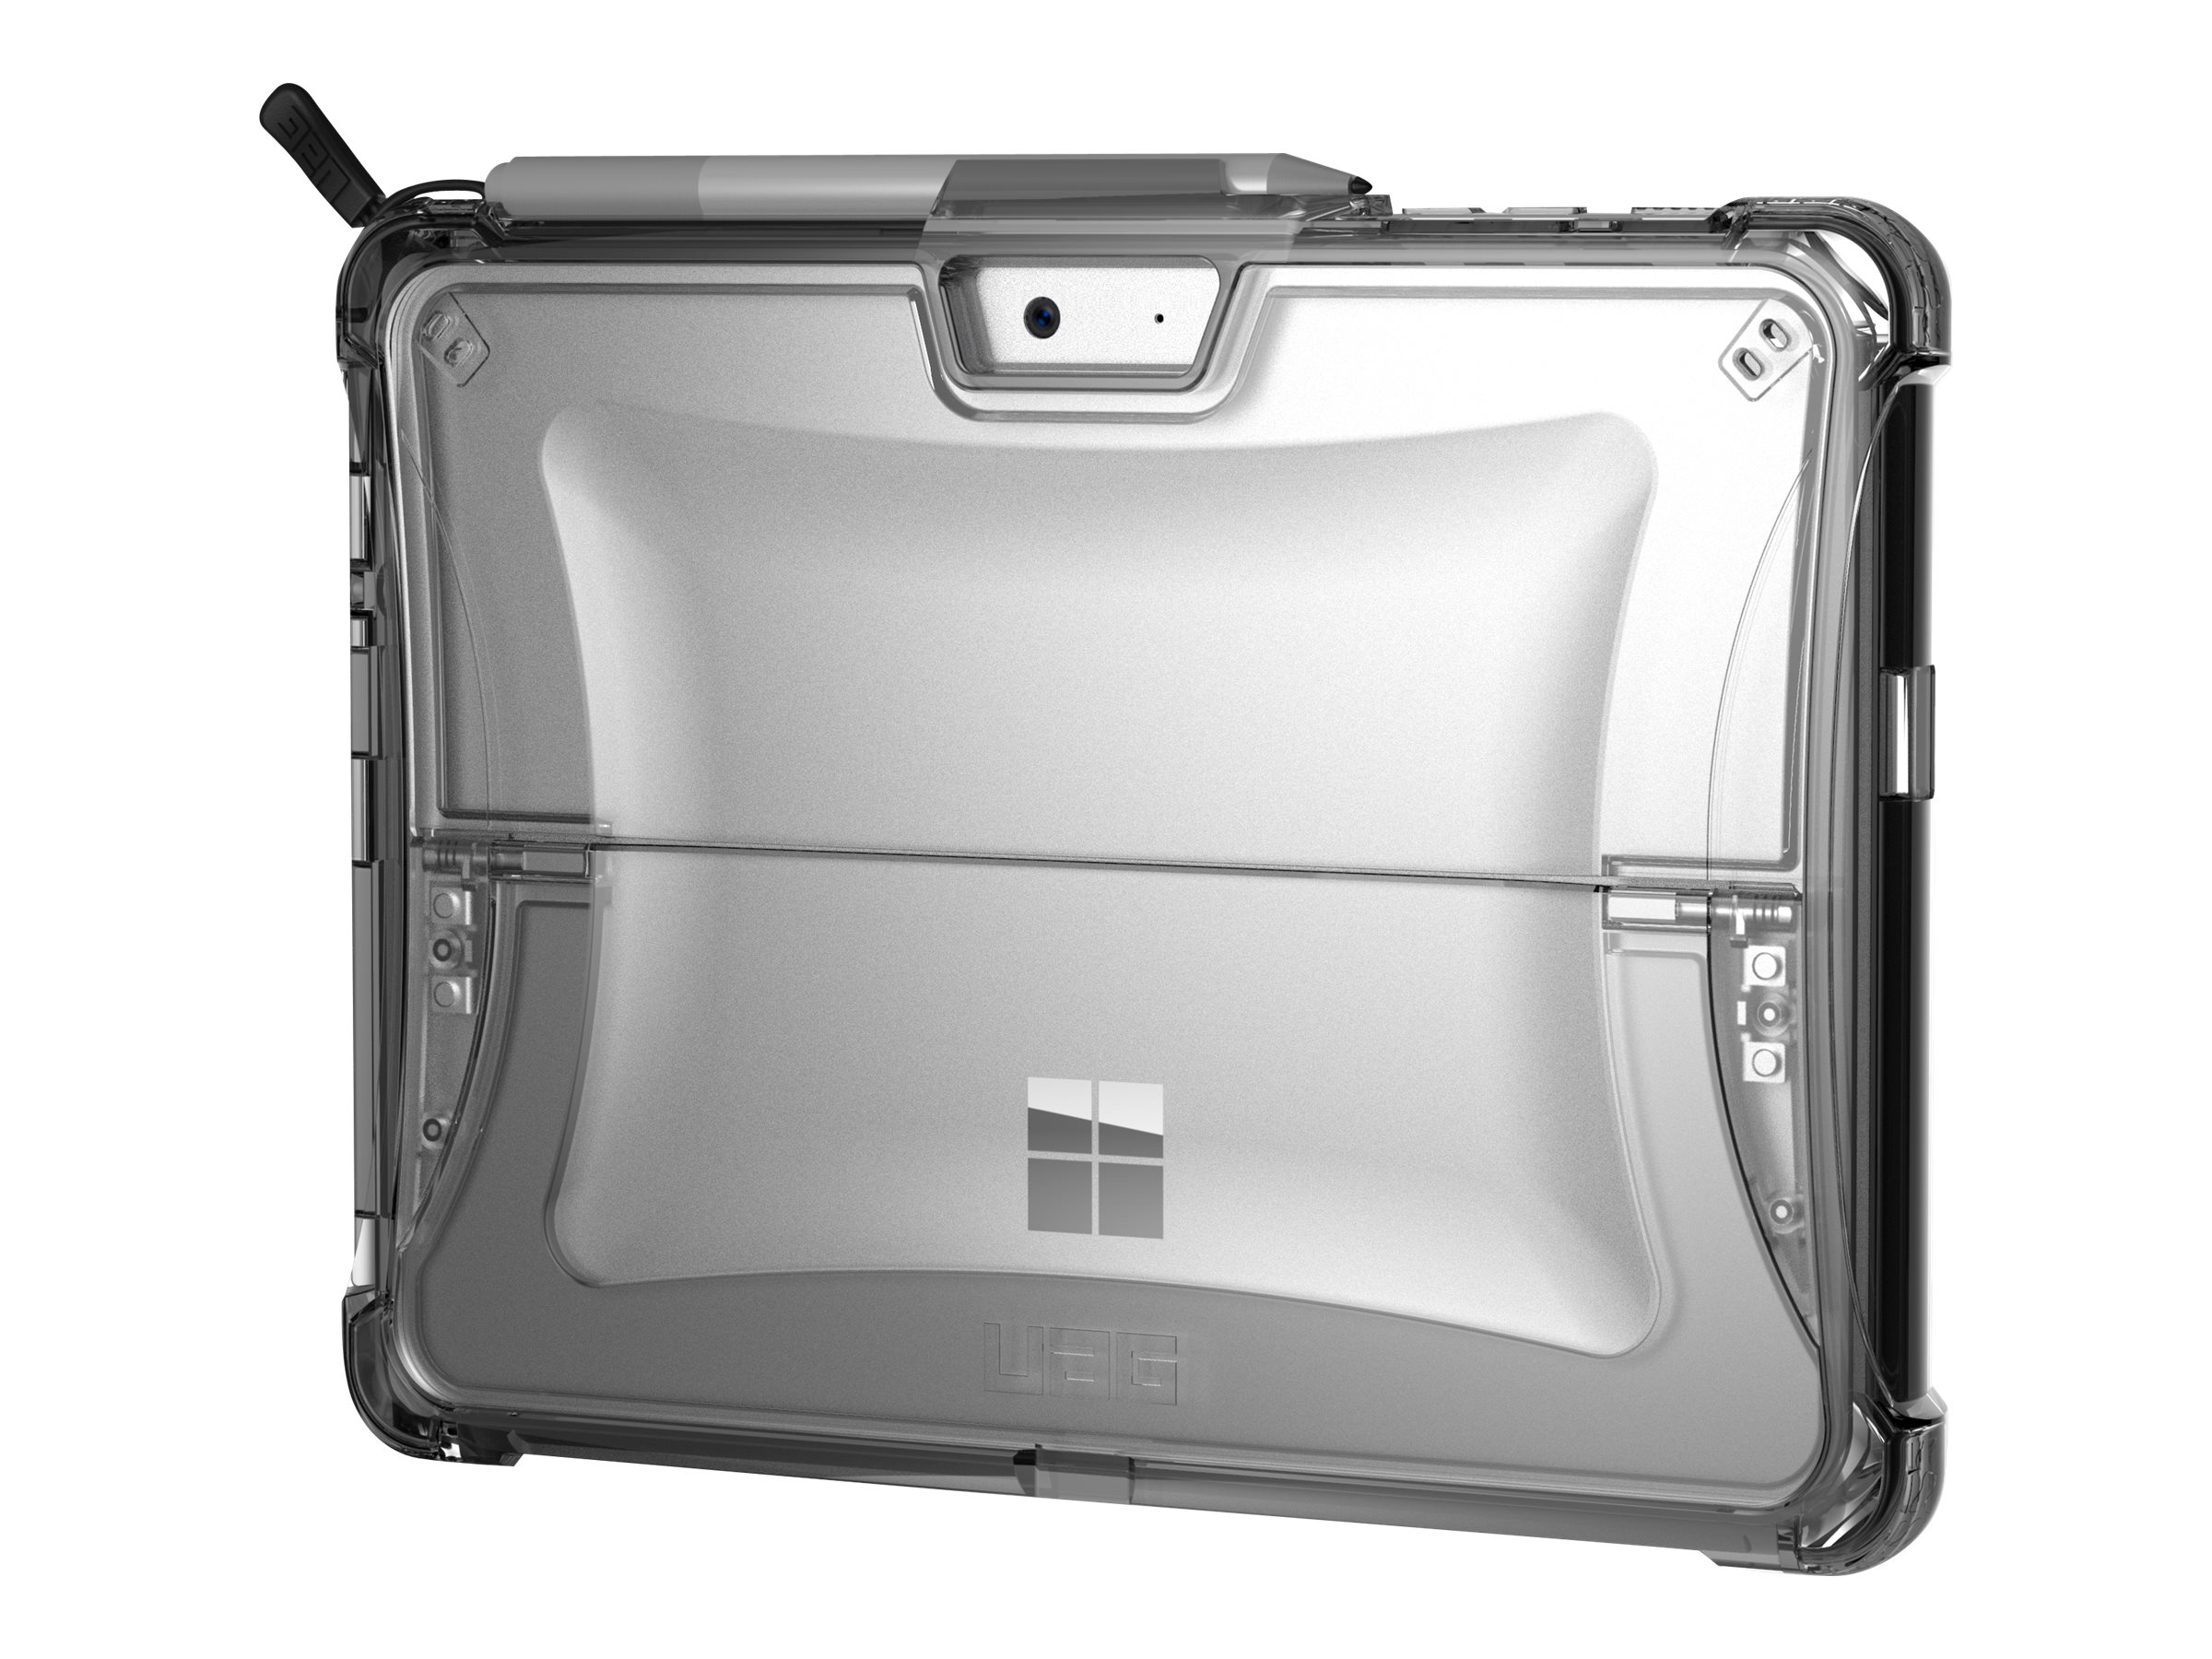 UAG Rugged Case for Microsoft Surface Go / Surface Go 2 - Plyo Ice - Hintere Abdeckung für Tablet - widerstandsfähig - für Micro